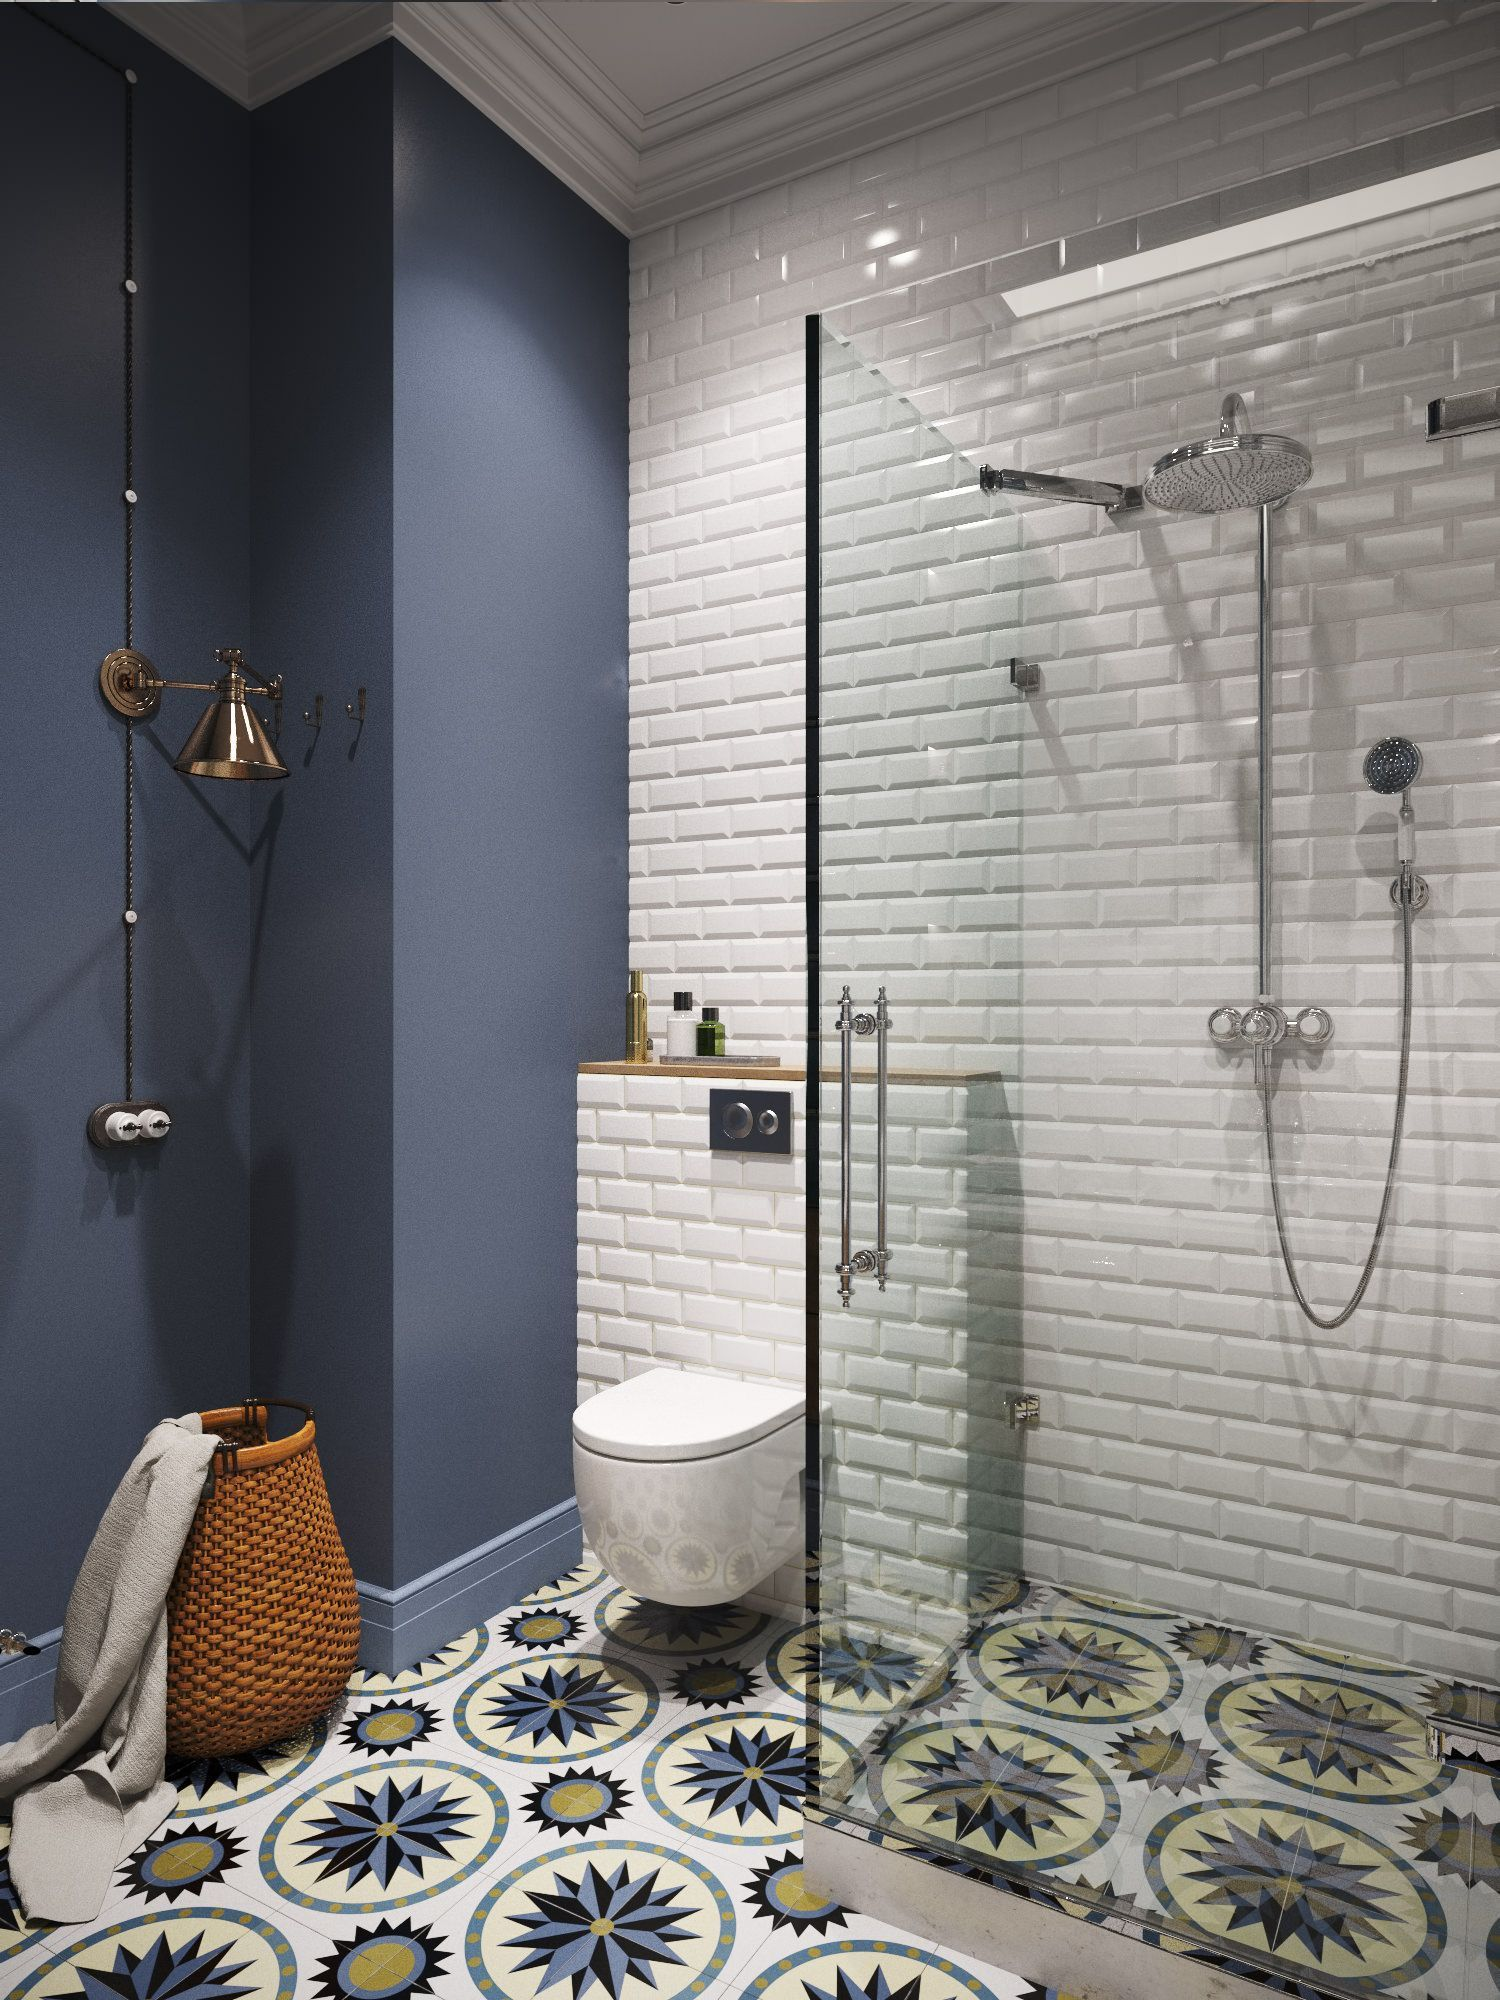 Use tile in the bathroom